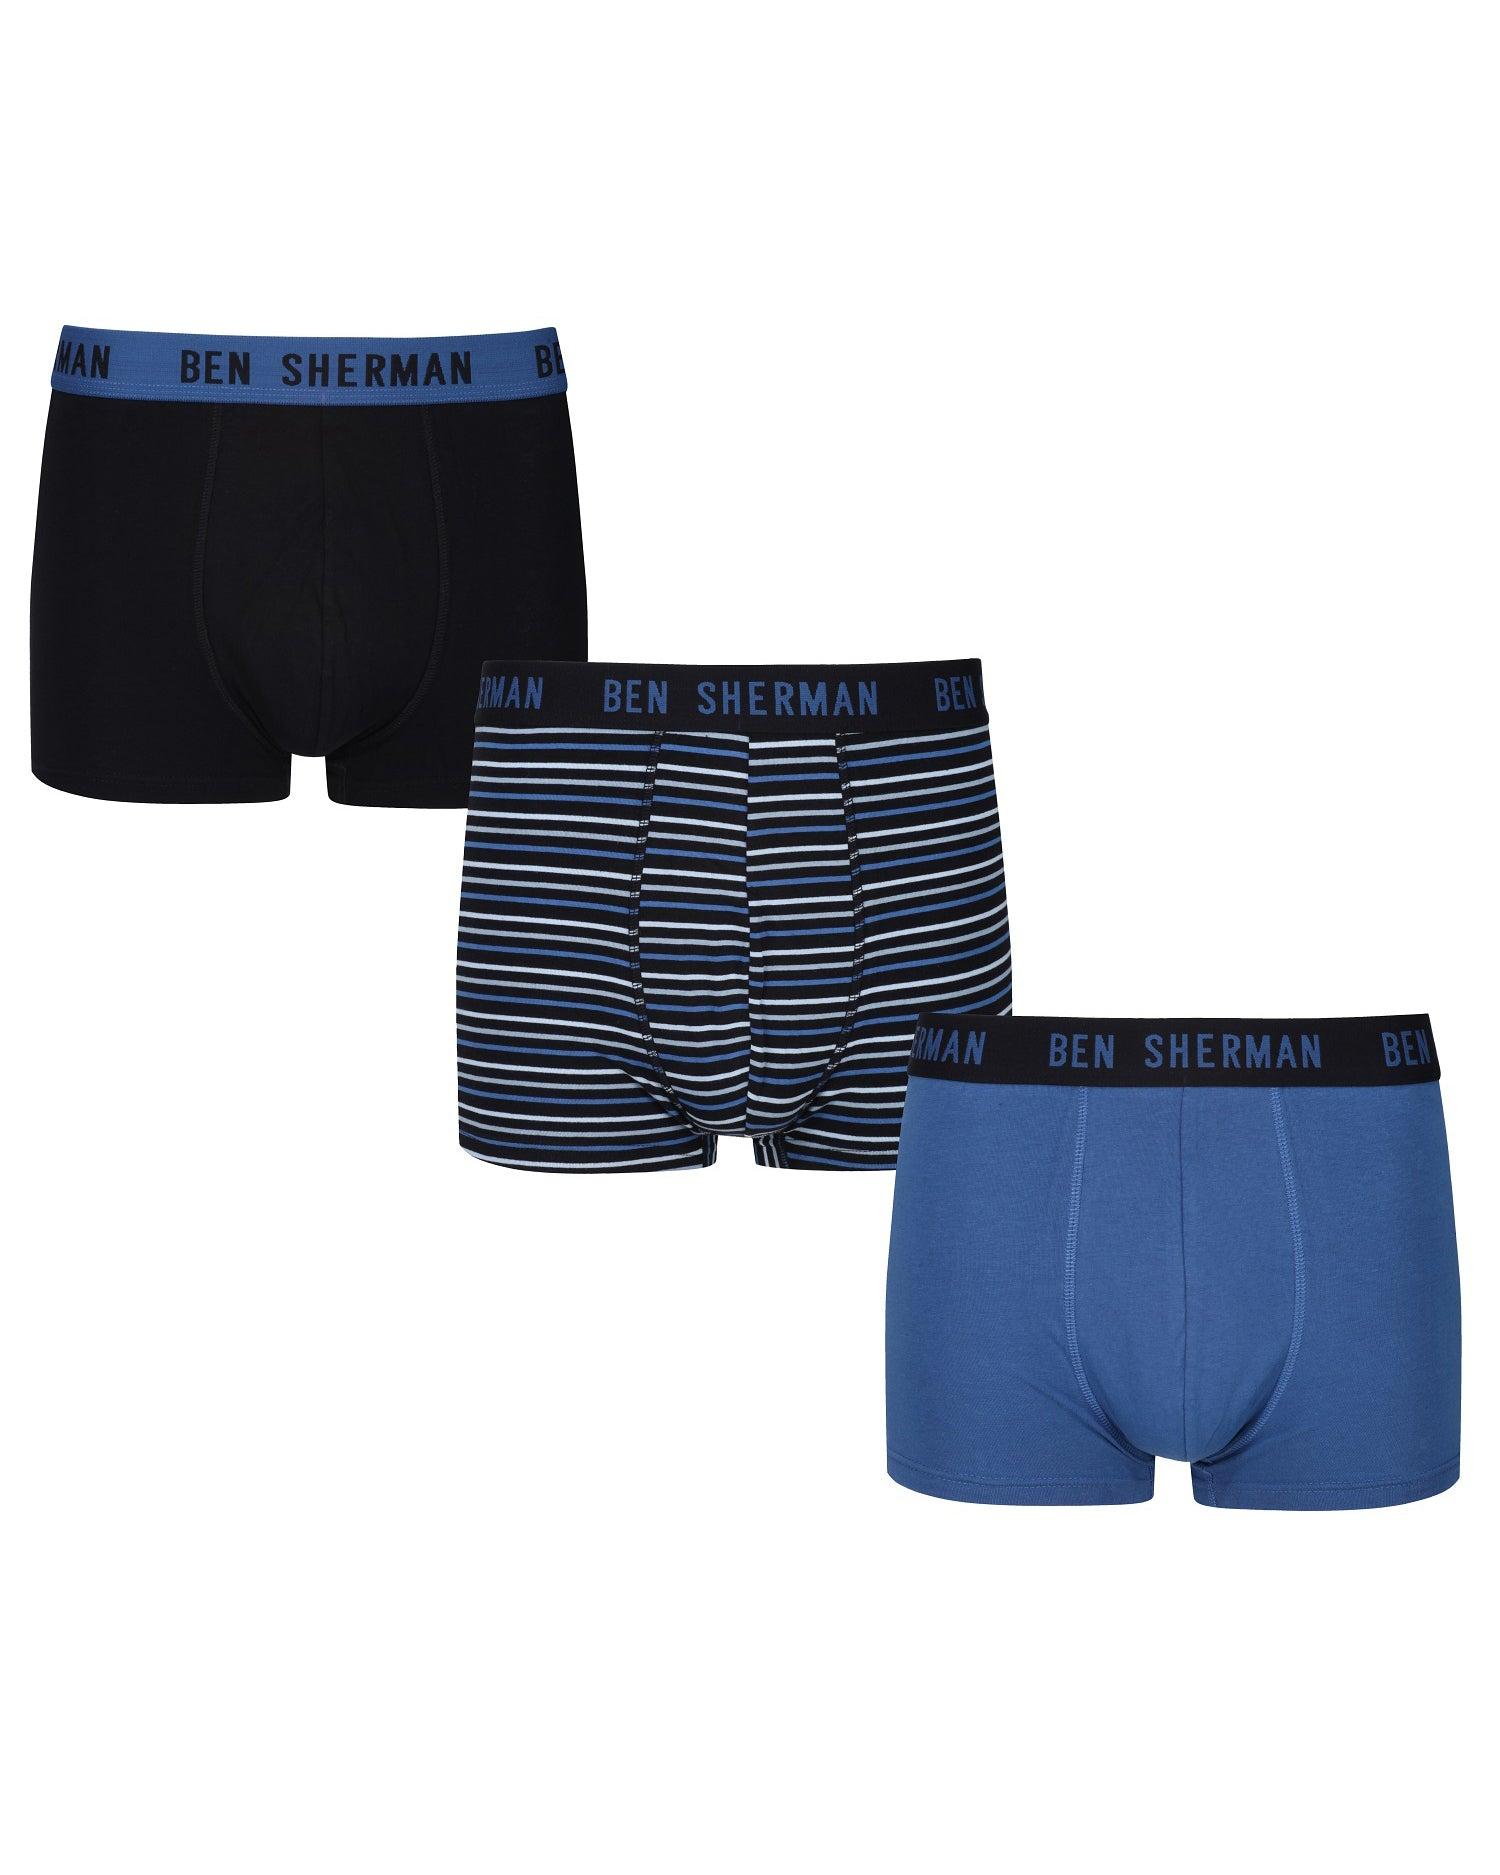 Chester Men's 3-Pack Fitted No-Fly Boxer-Briefs - Black/Blue Black Stripe/Delft